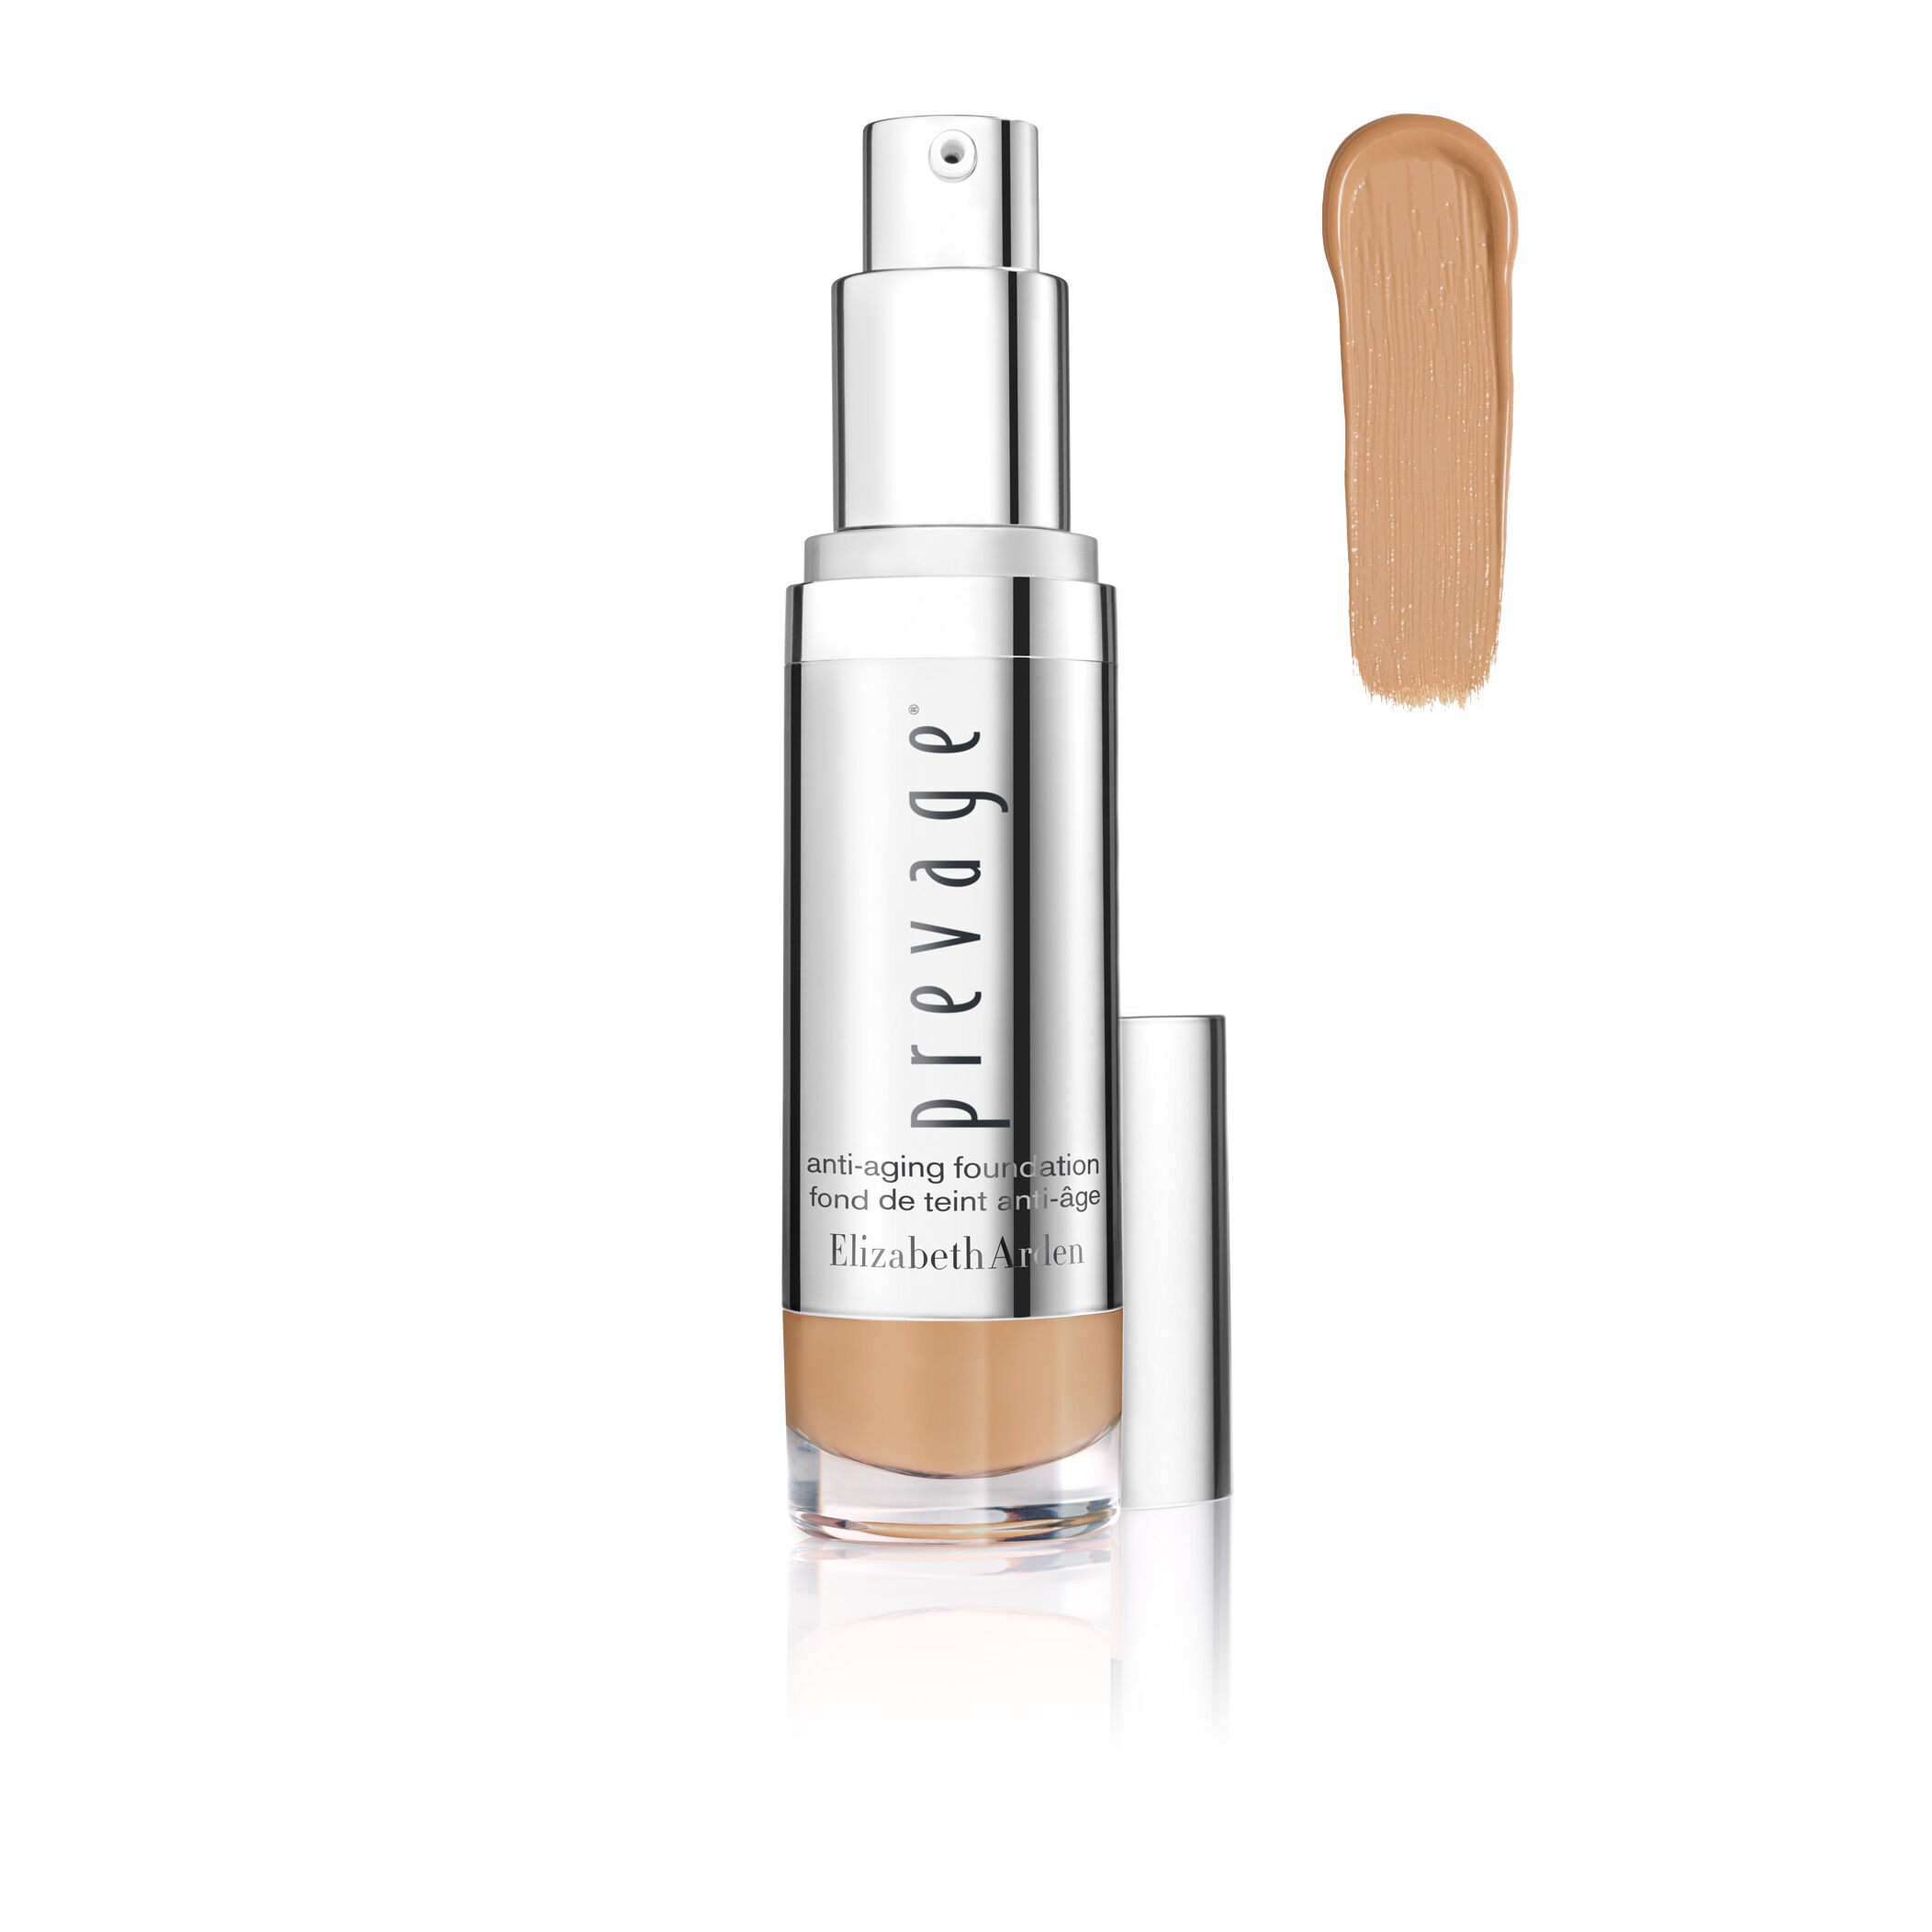 PREVAGE Anti-Aging Foundation Broad Spectrum Sunscreen SPF 30